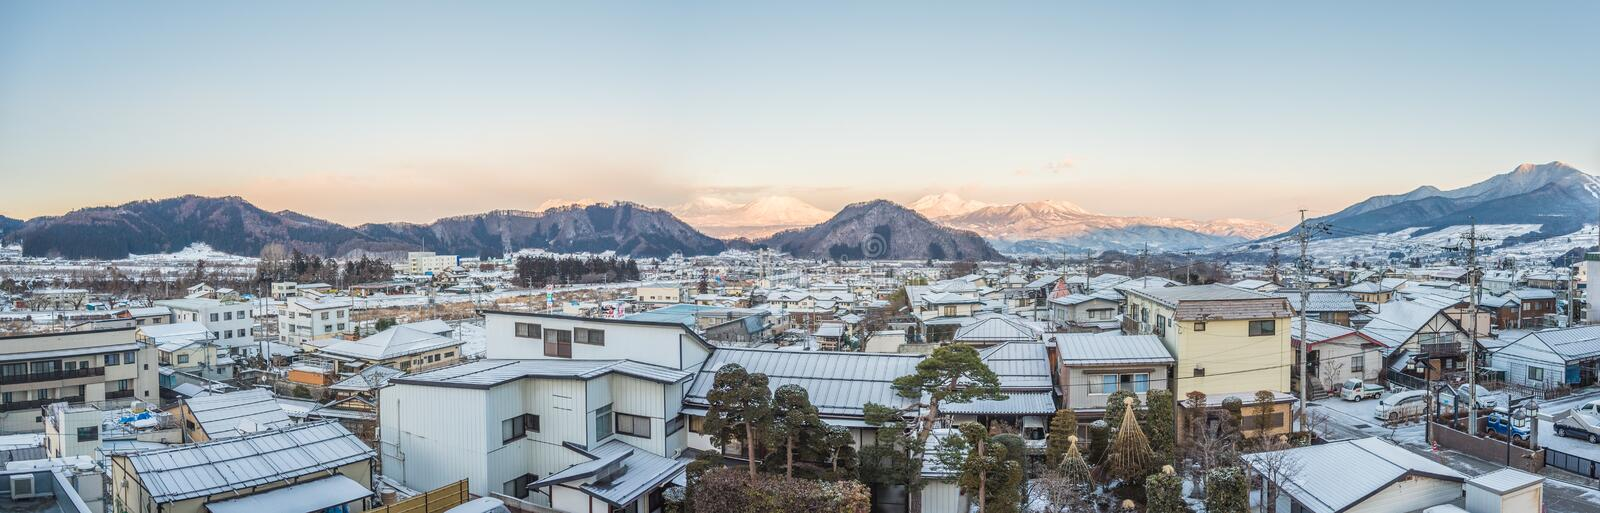 Panorama view of town yudanaka , japan. Beautiful wide panorama view from roof top town of Yudanaka , Japan . Famous town of snow monkey stock image